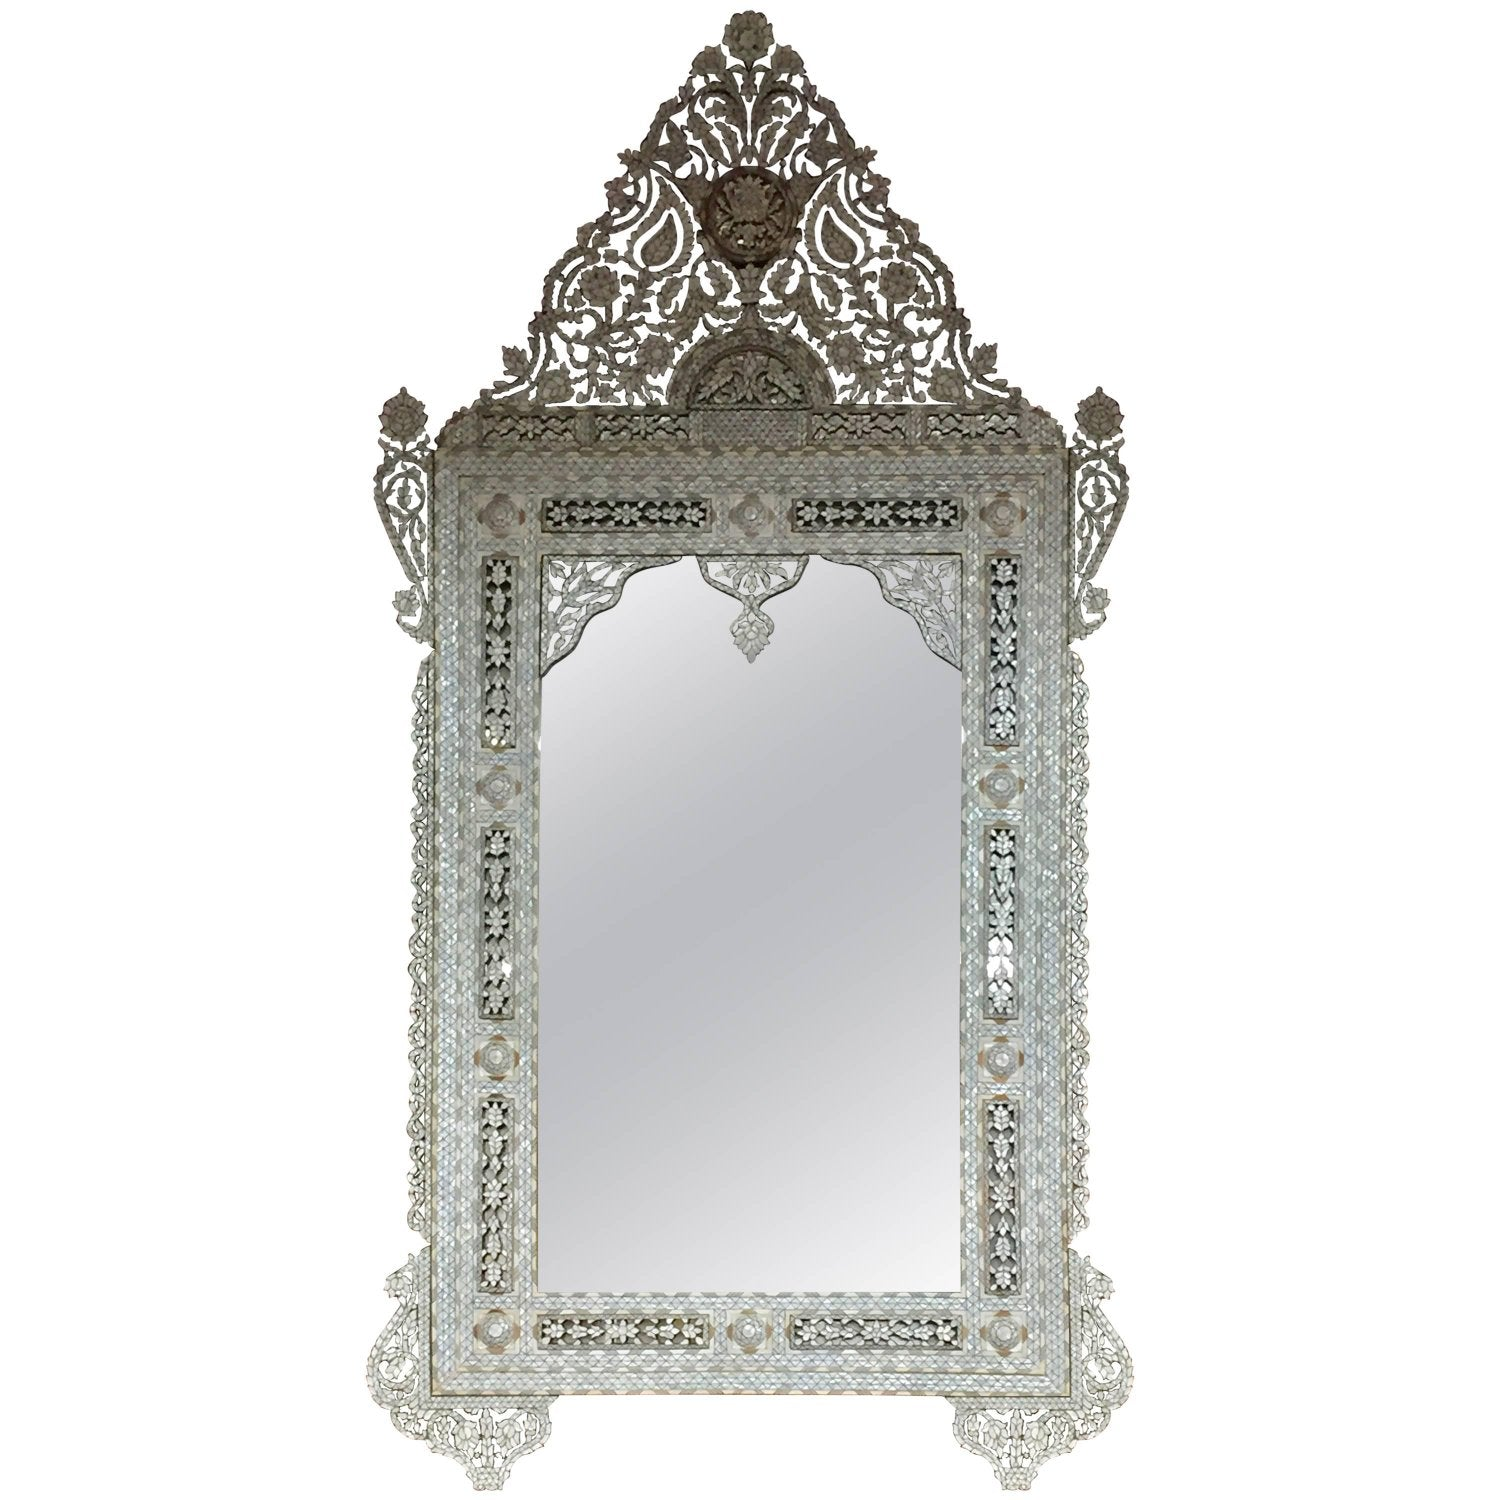 Massive syrian inlay mother of pearl mirror